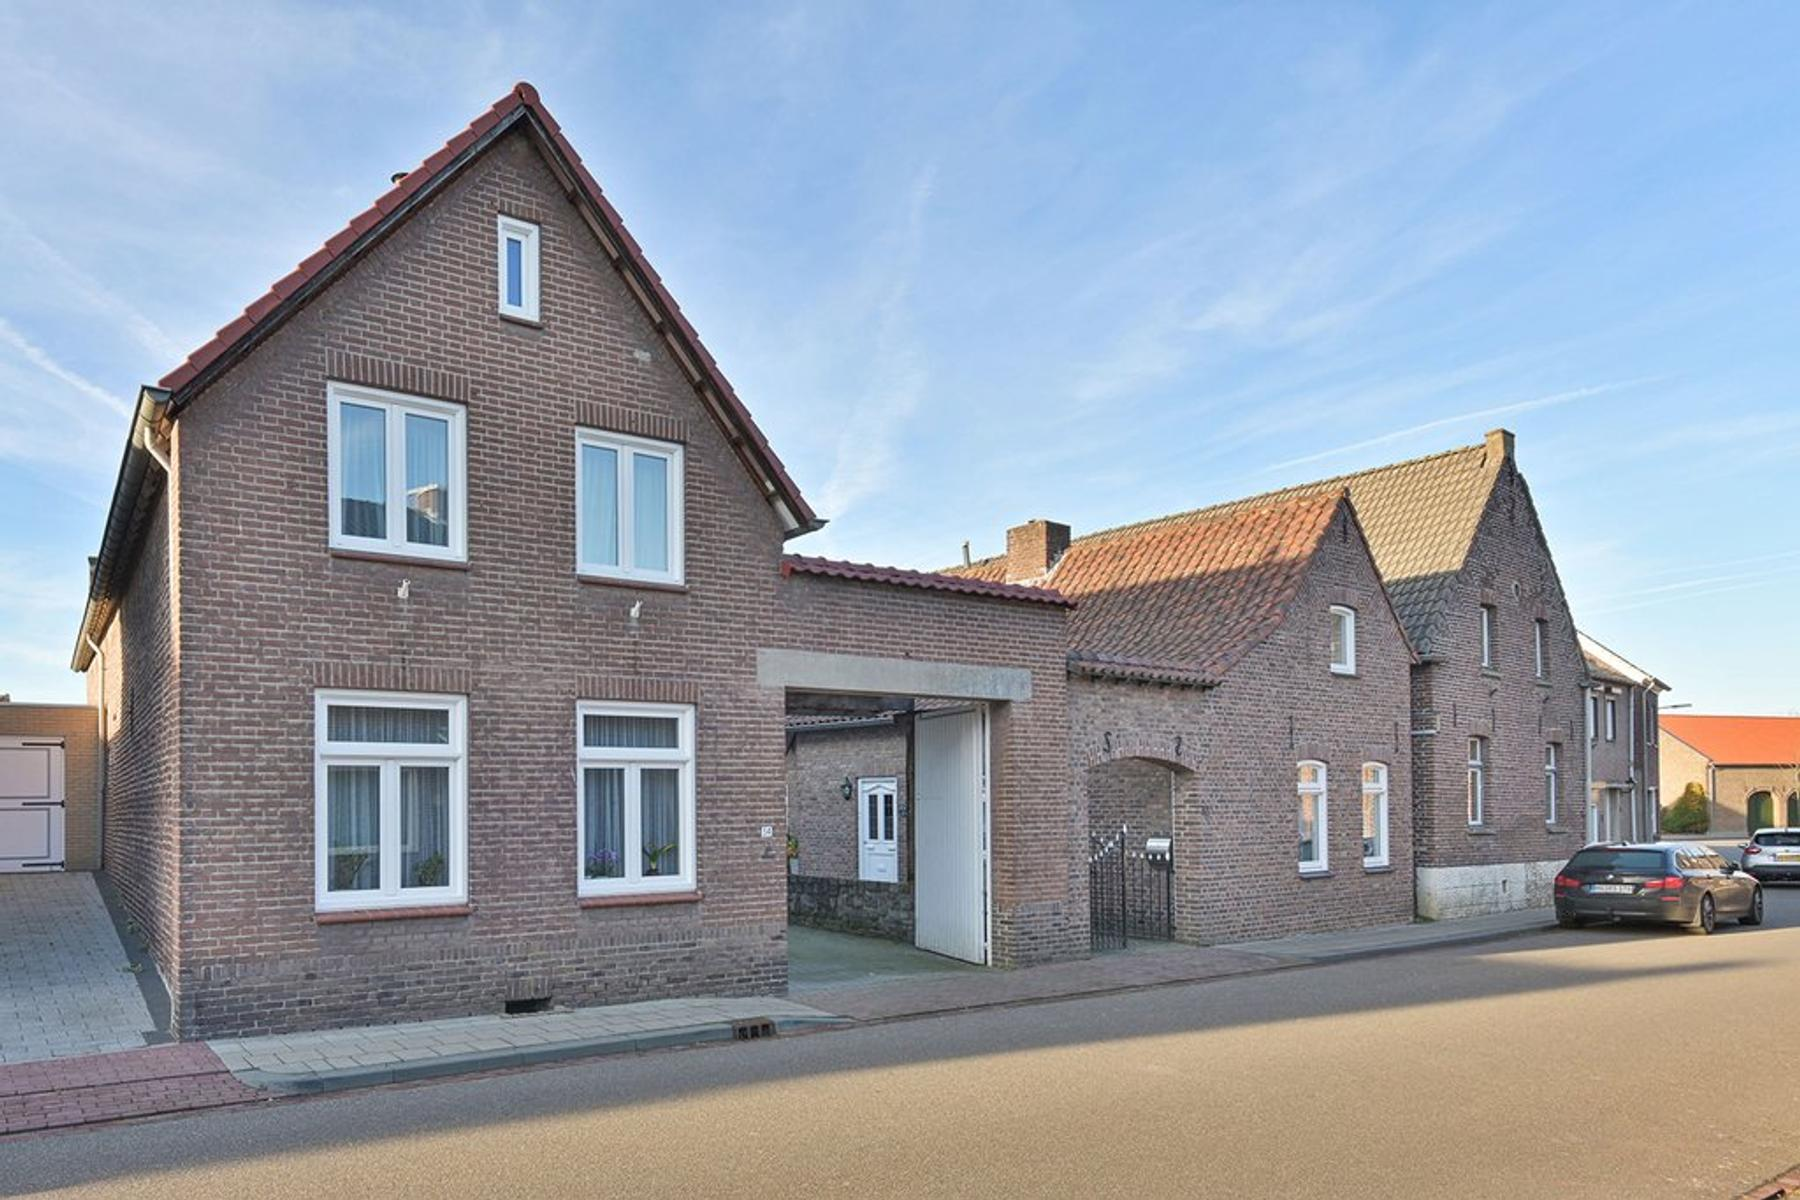 Dorpsstraat 34 in Guttecoven 6143 AX